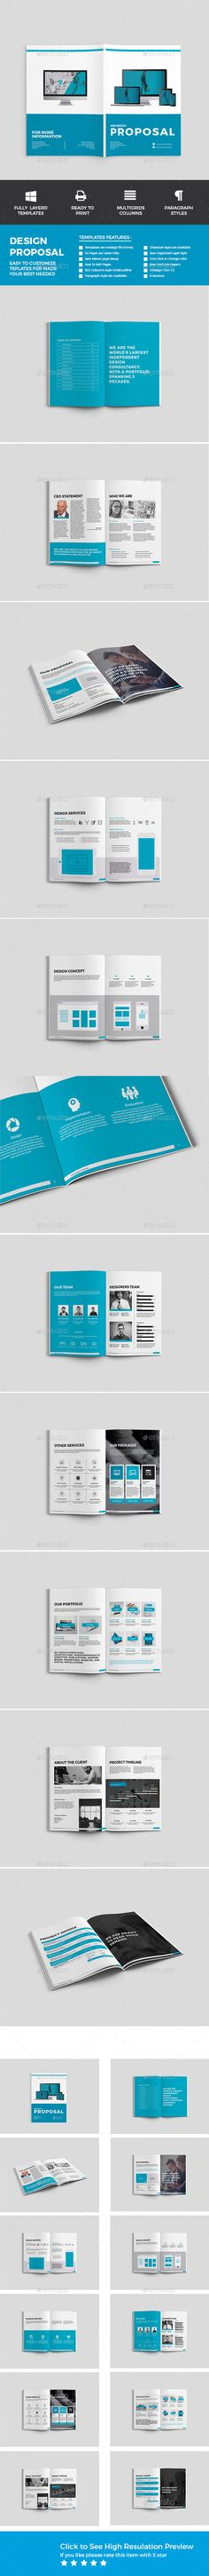 Three Rings Project Proposal Template Proposal templates - project proposal